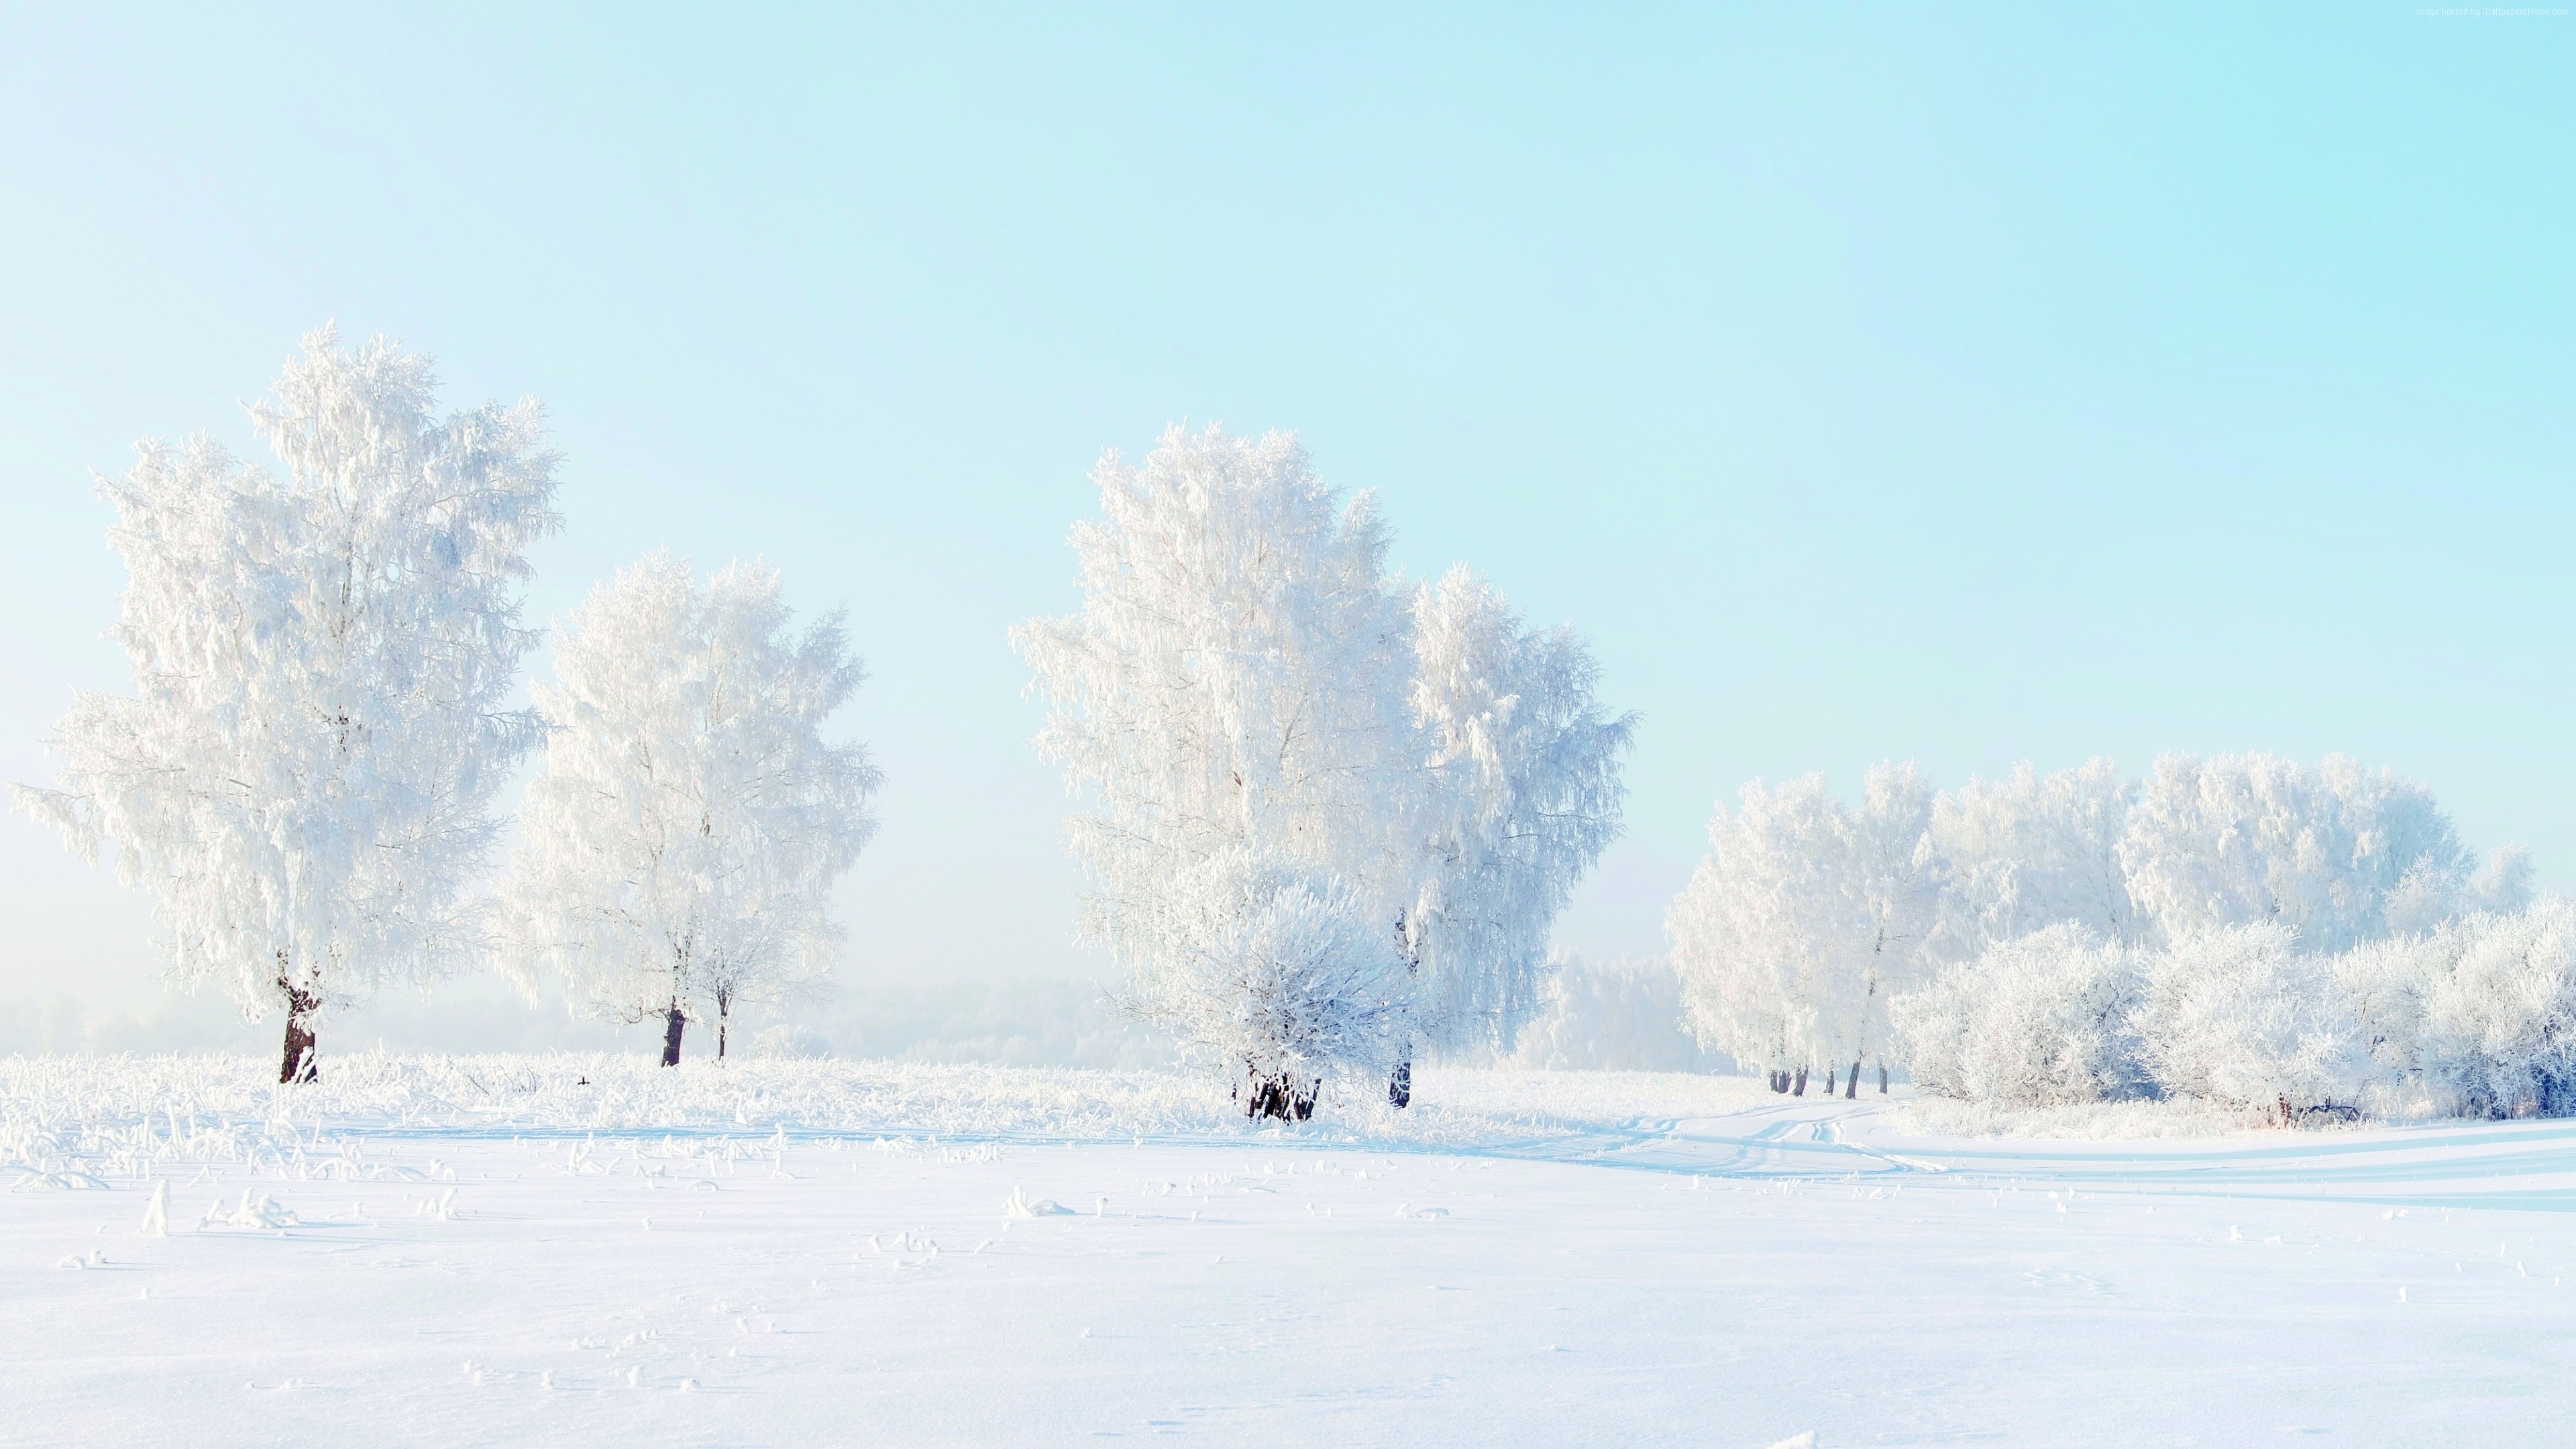 Wallpaper Trees Snow Winter 4k Nature Wallpaper Download High Resolution 4k Wallpaper